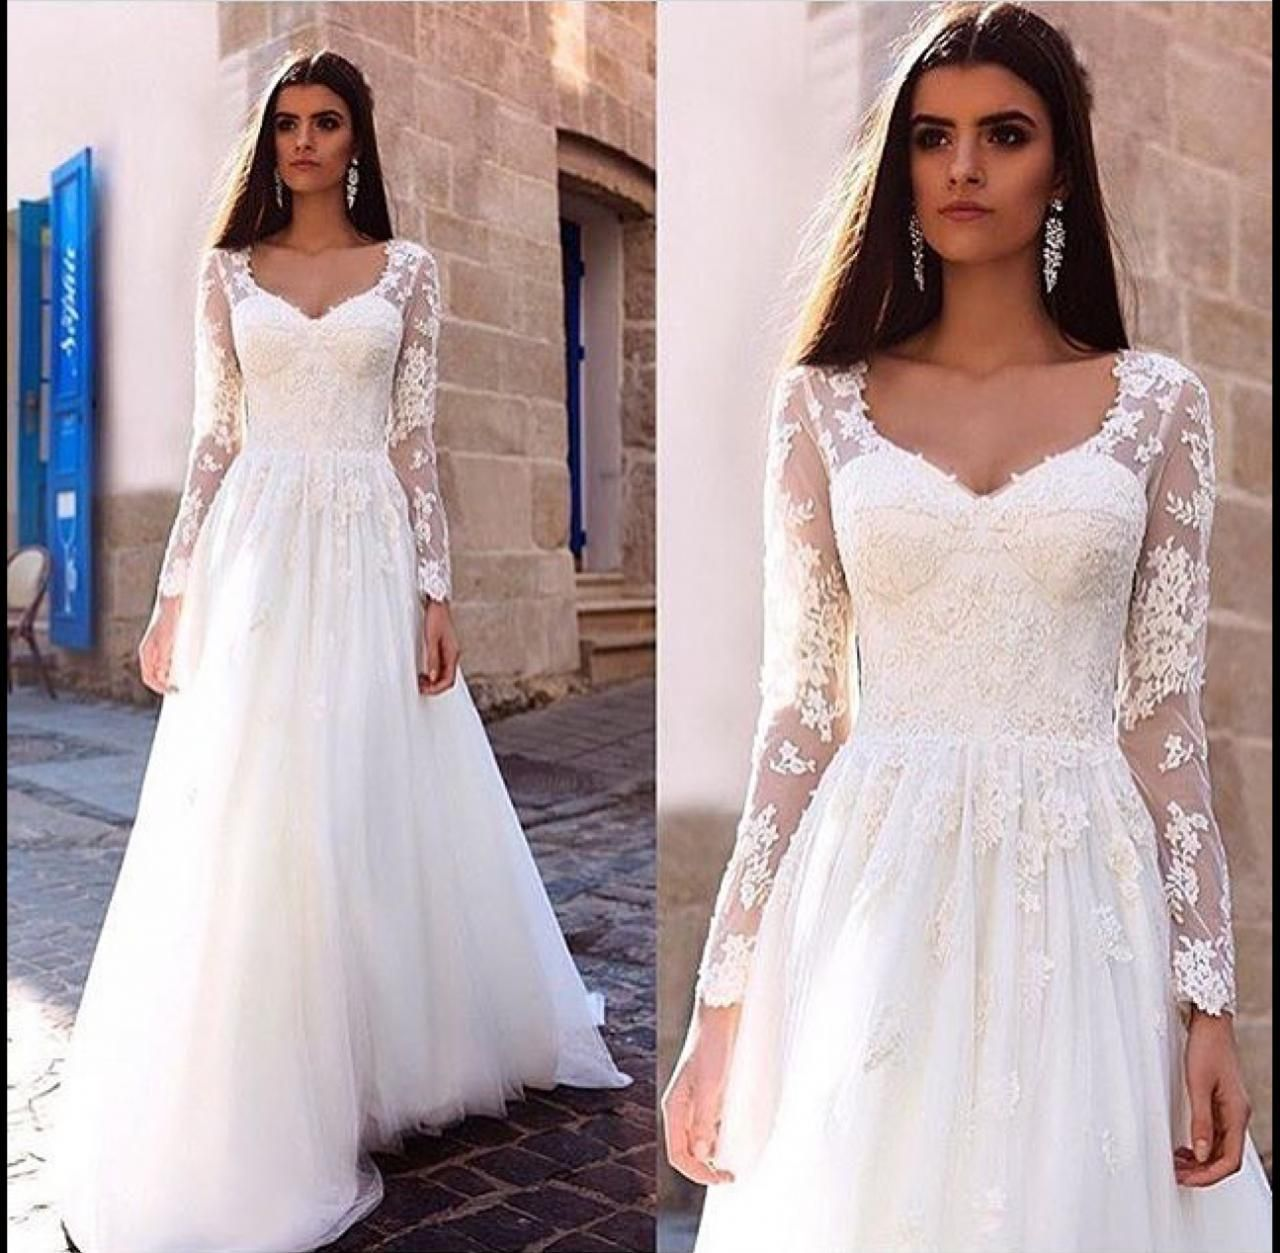 Long sleeve lace wedding dress lace ball gown vintage bridal gown